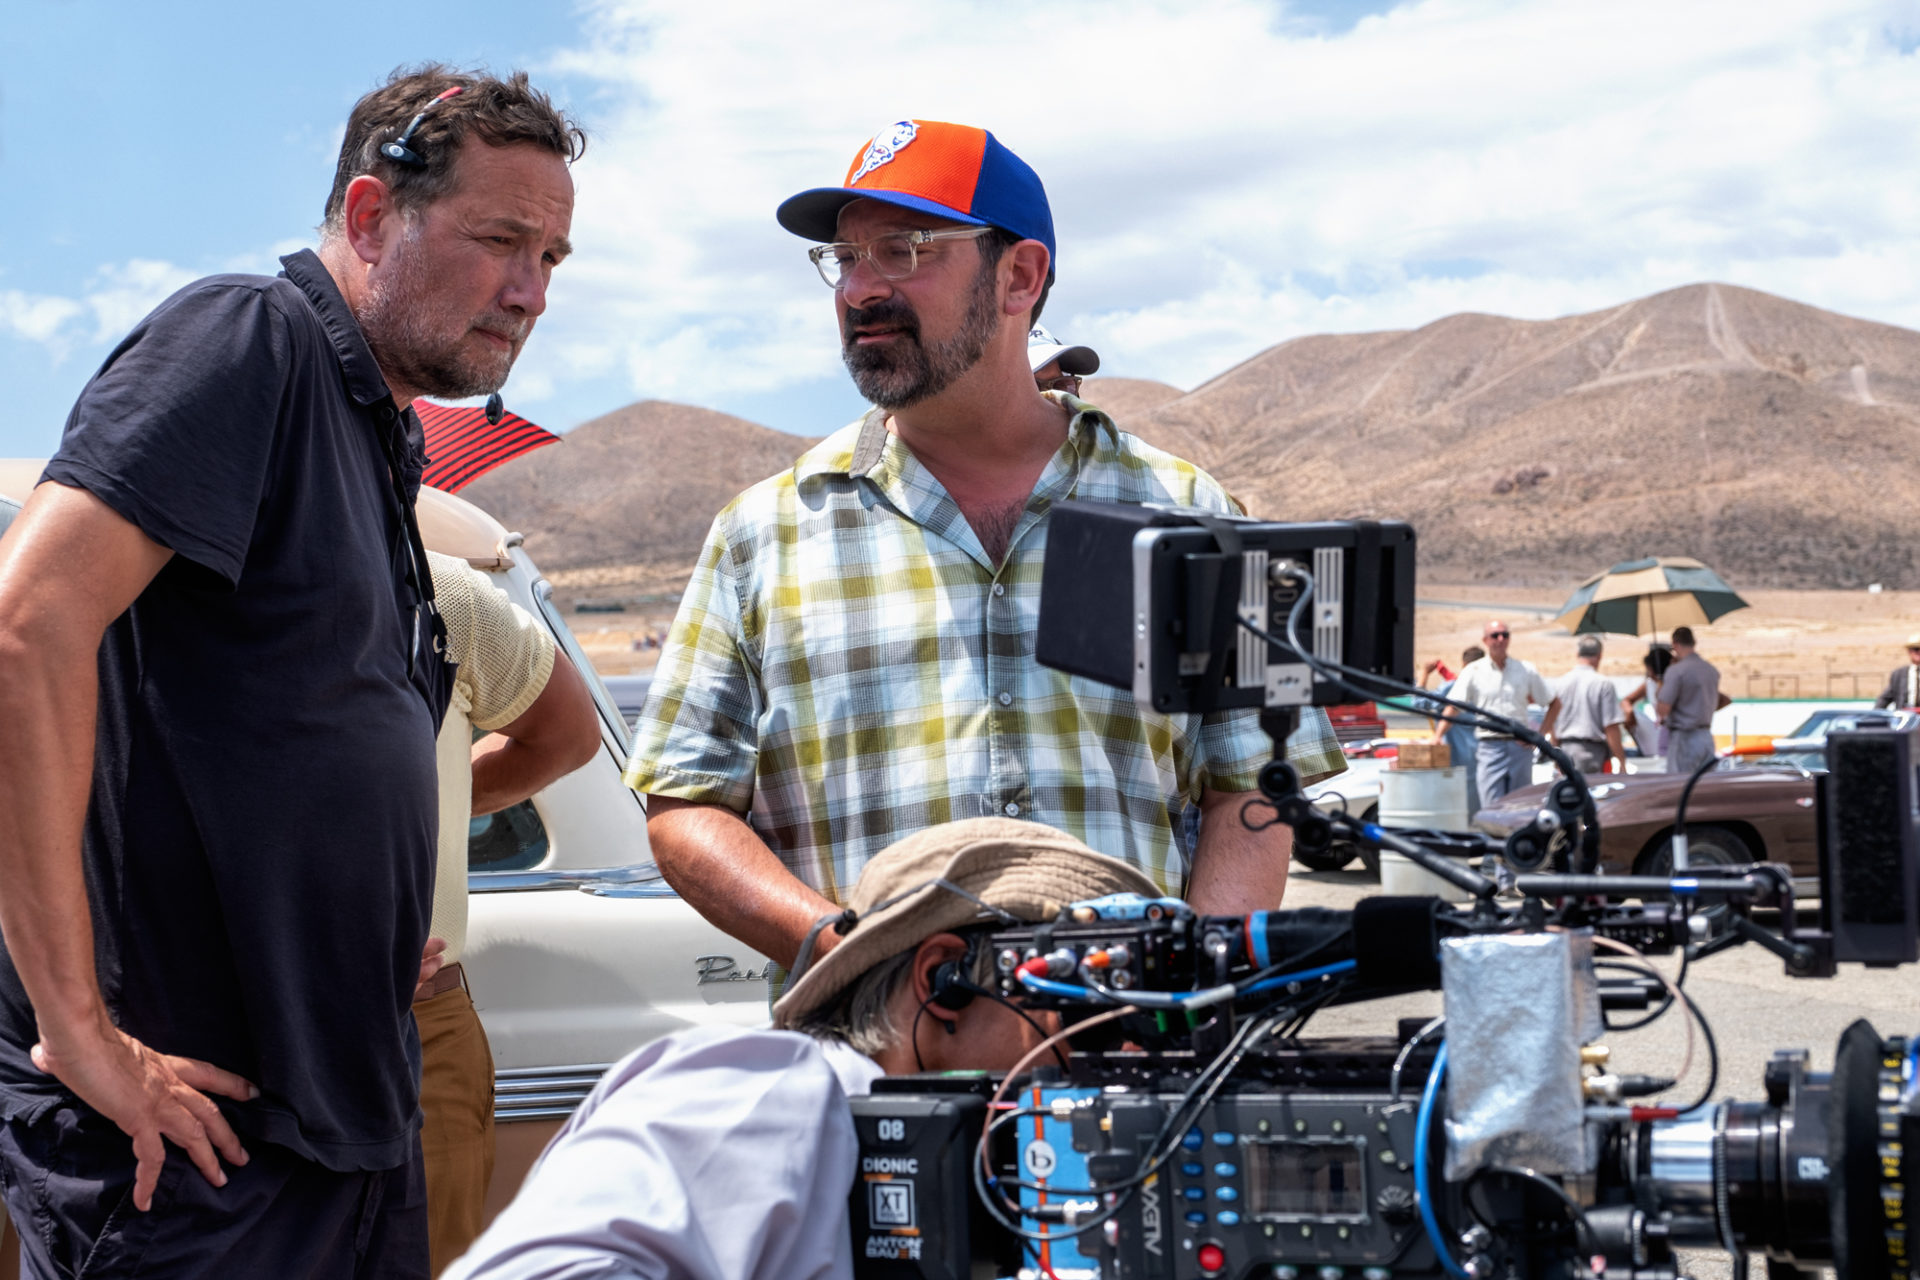 Phedon Papamichael ASC with director James Mangold